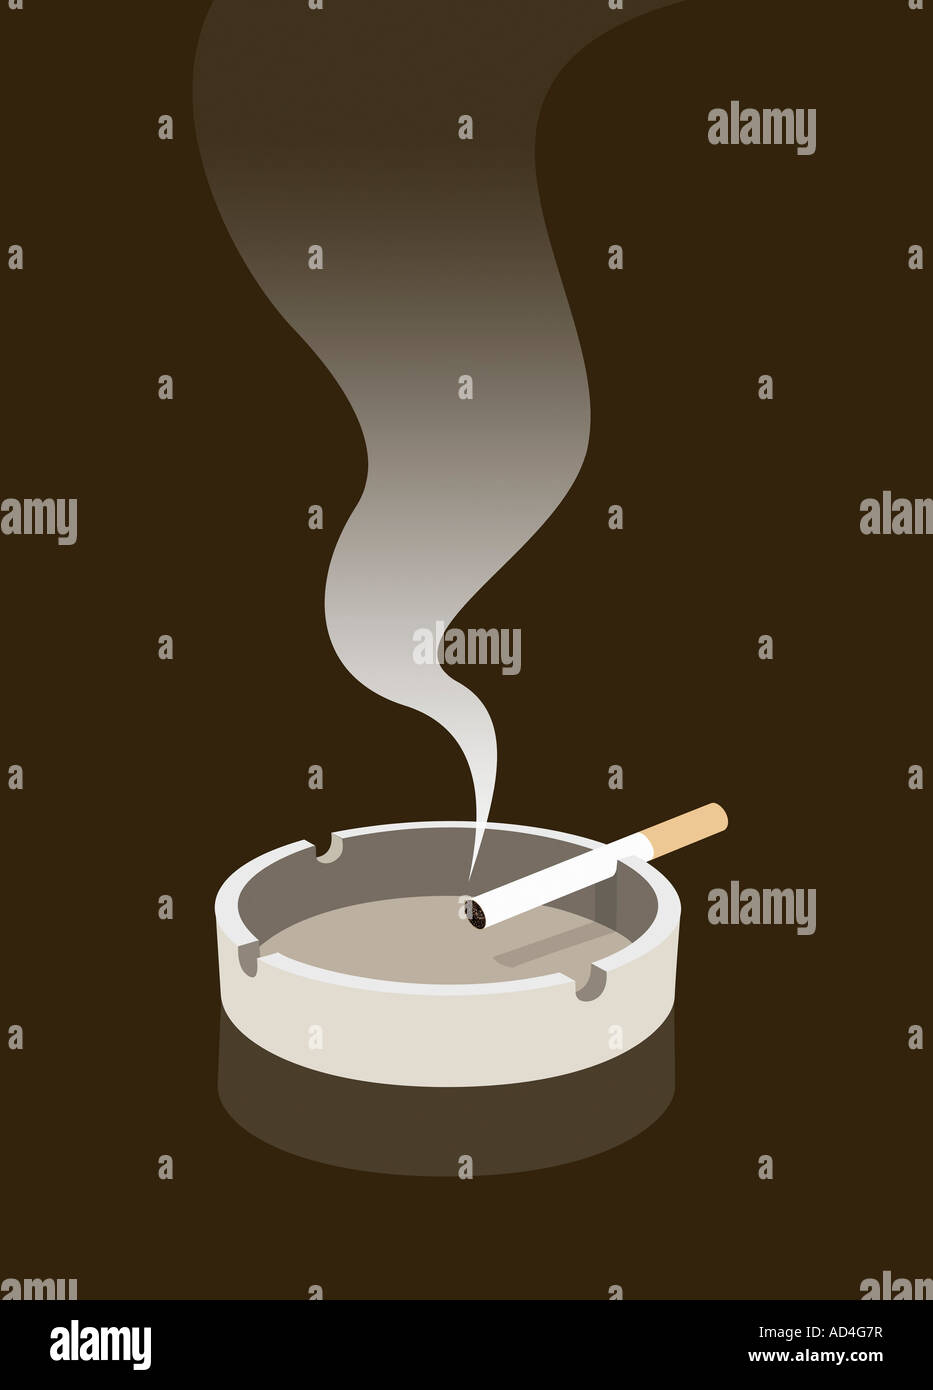 A cigarette burning in an ashtray - Stock Image